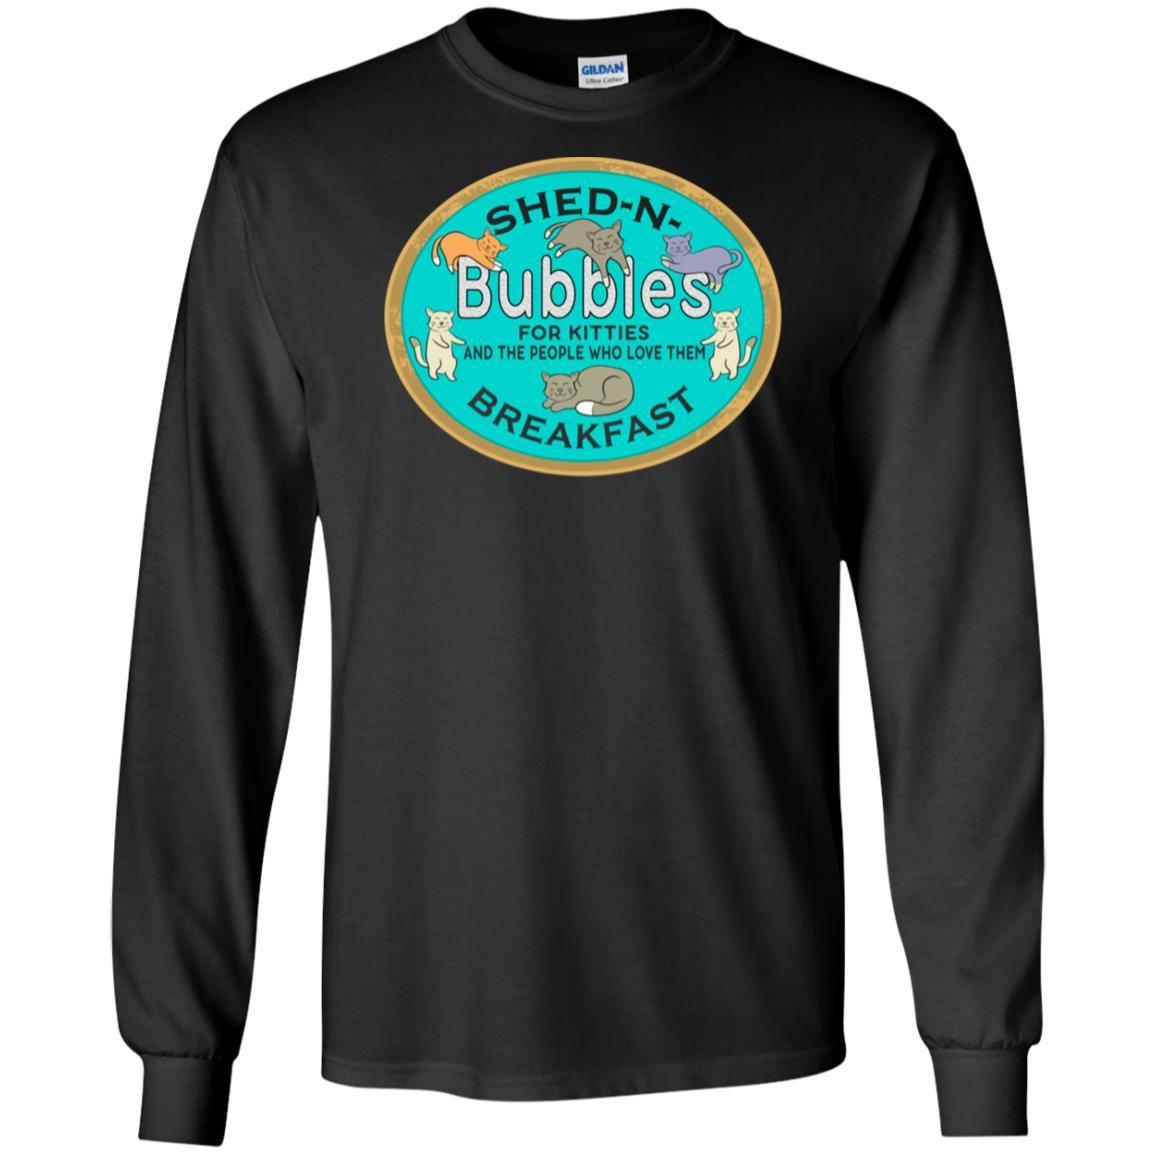 Bubbles' S&B Long Sleeve